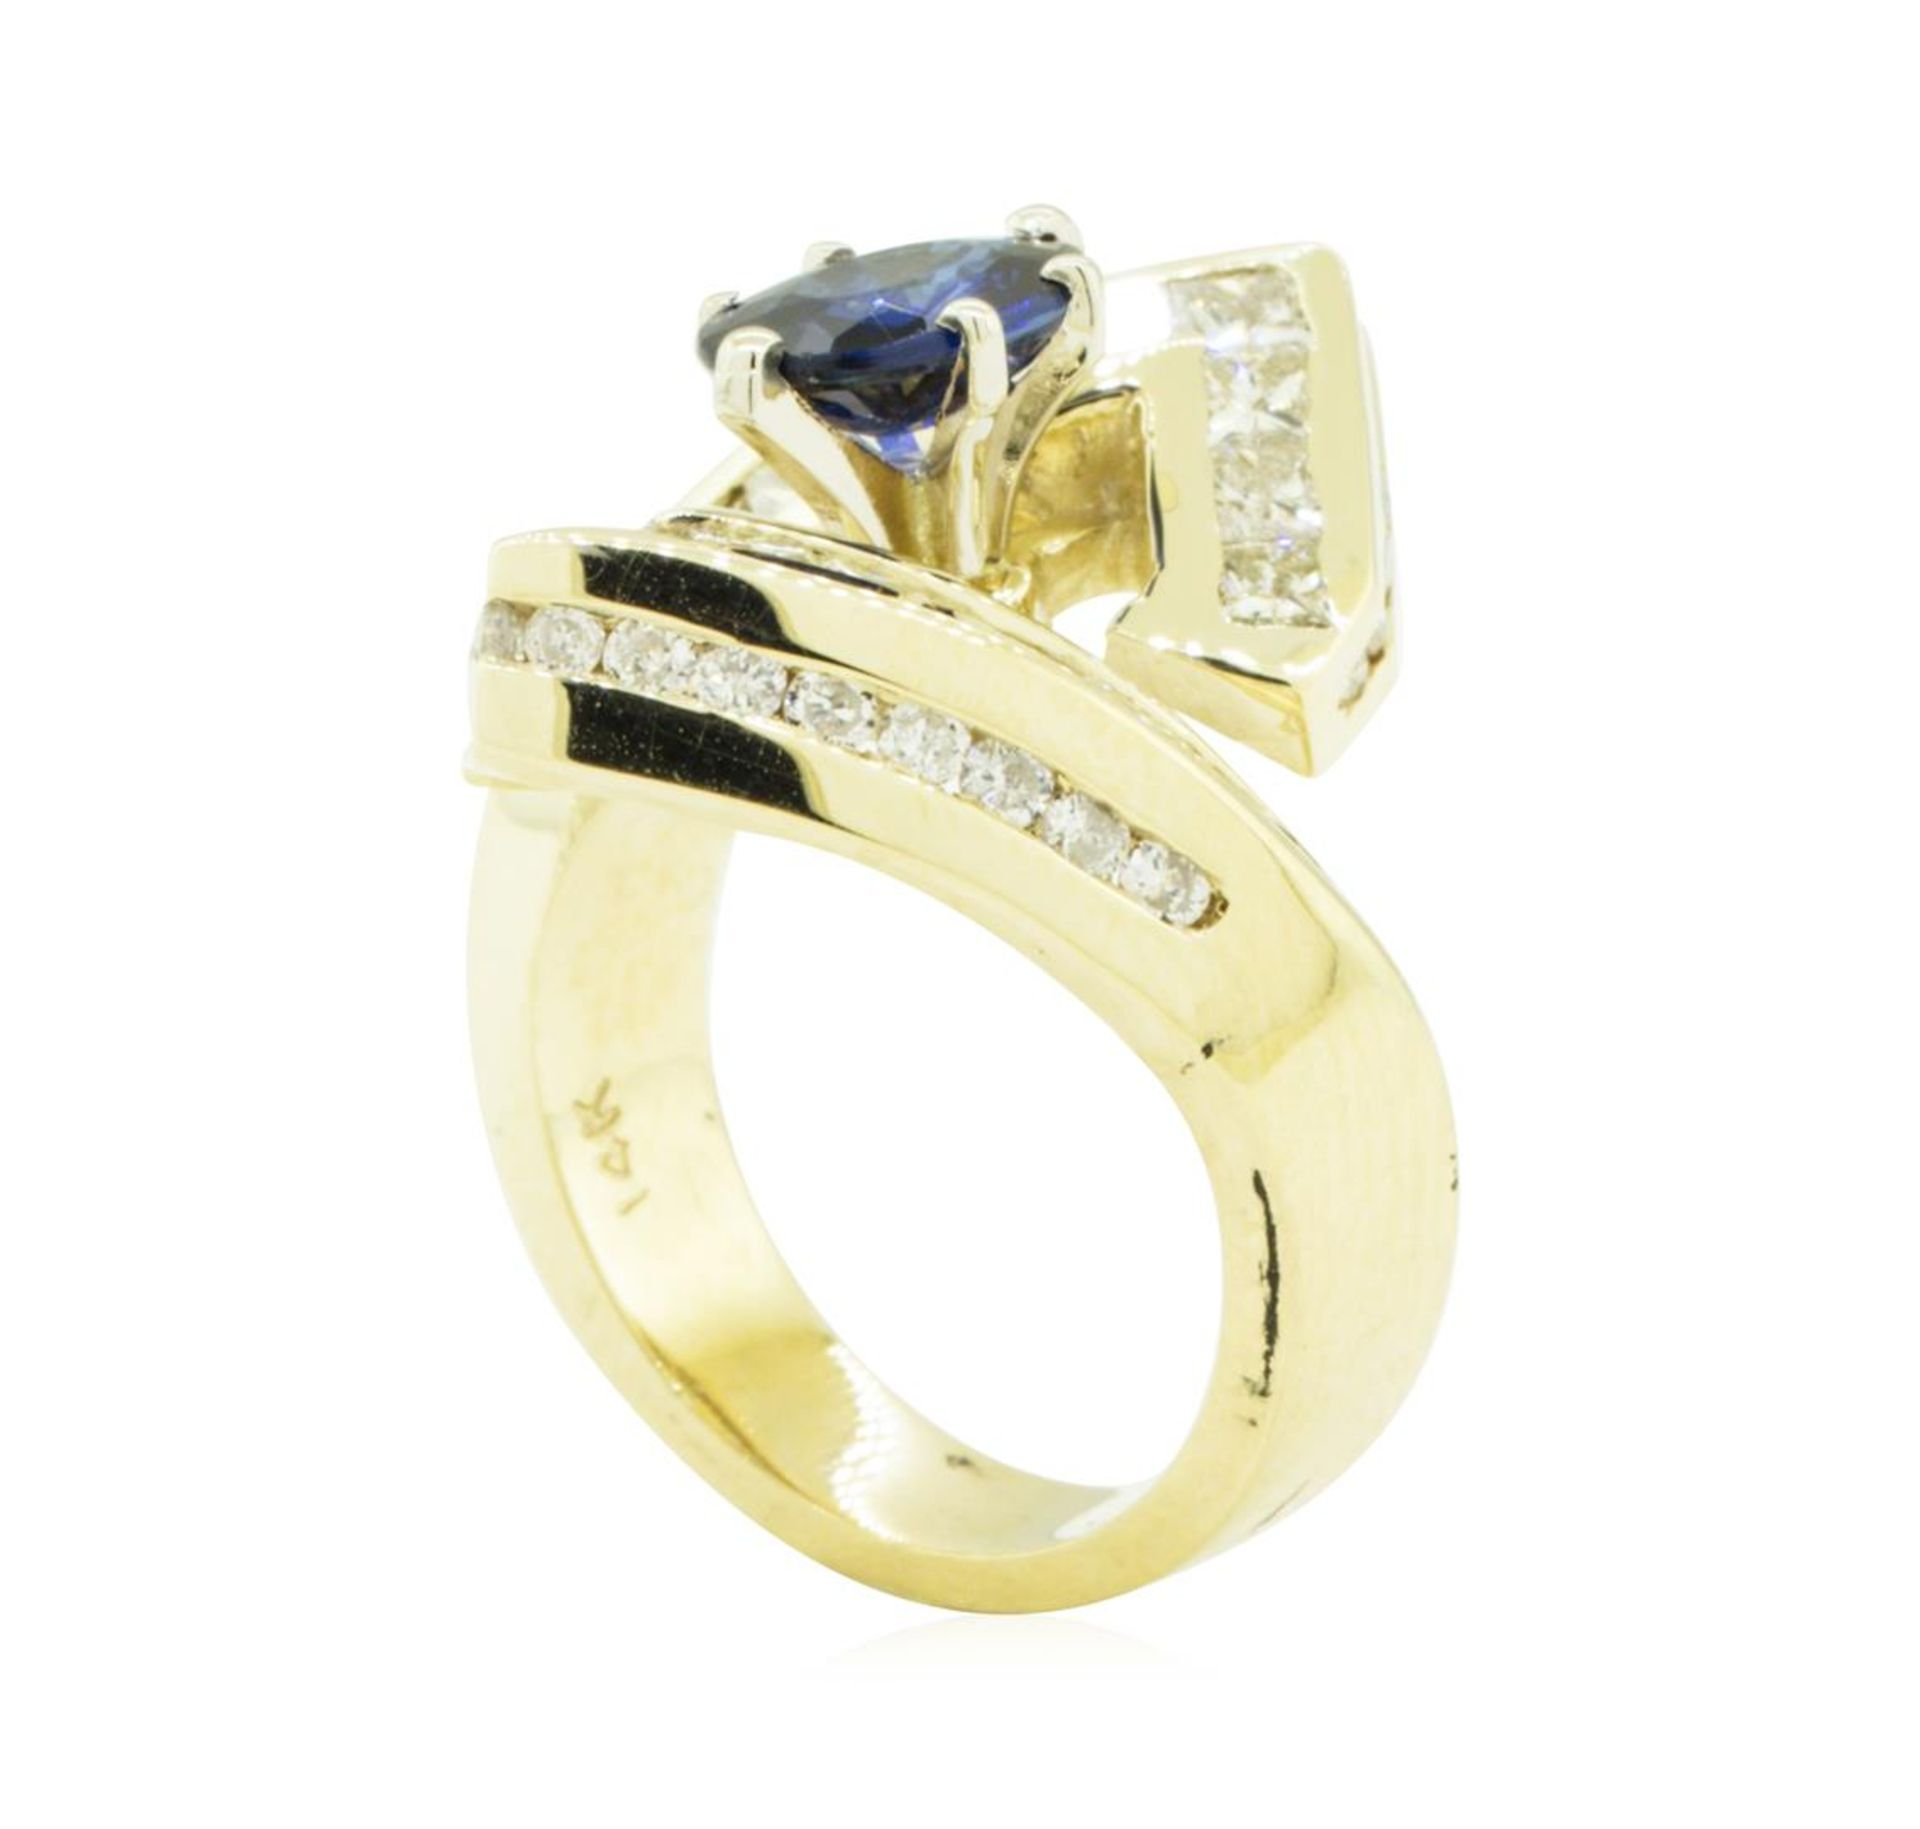 3.16 ctw Oval Brilliant Blue Sapphire And Diamond Ring - 14KT Yellow Gold - Image 4 of 5